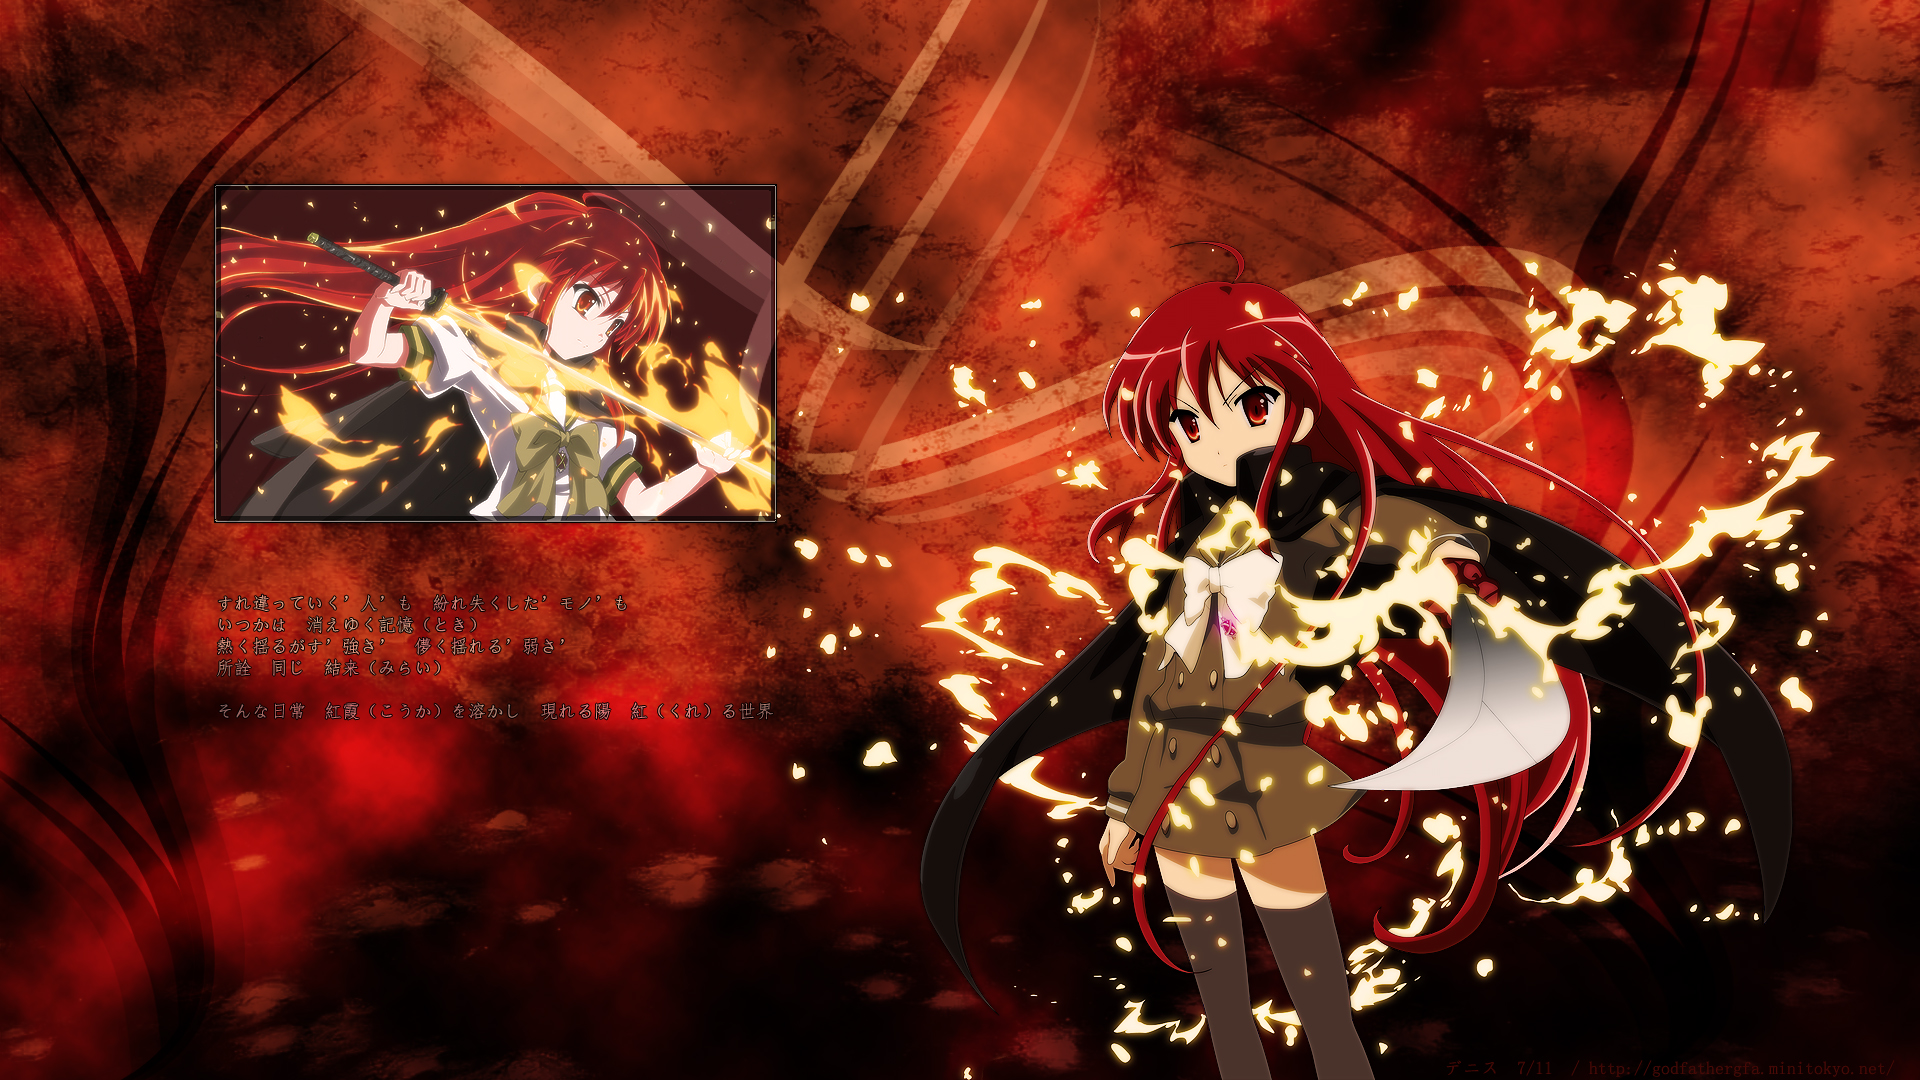 Download Shakugan no Shana Wallpaper: Stained red ...